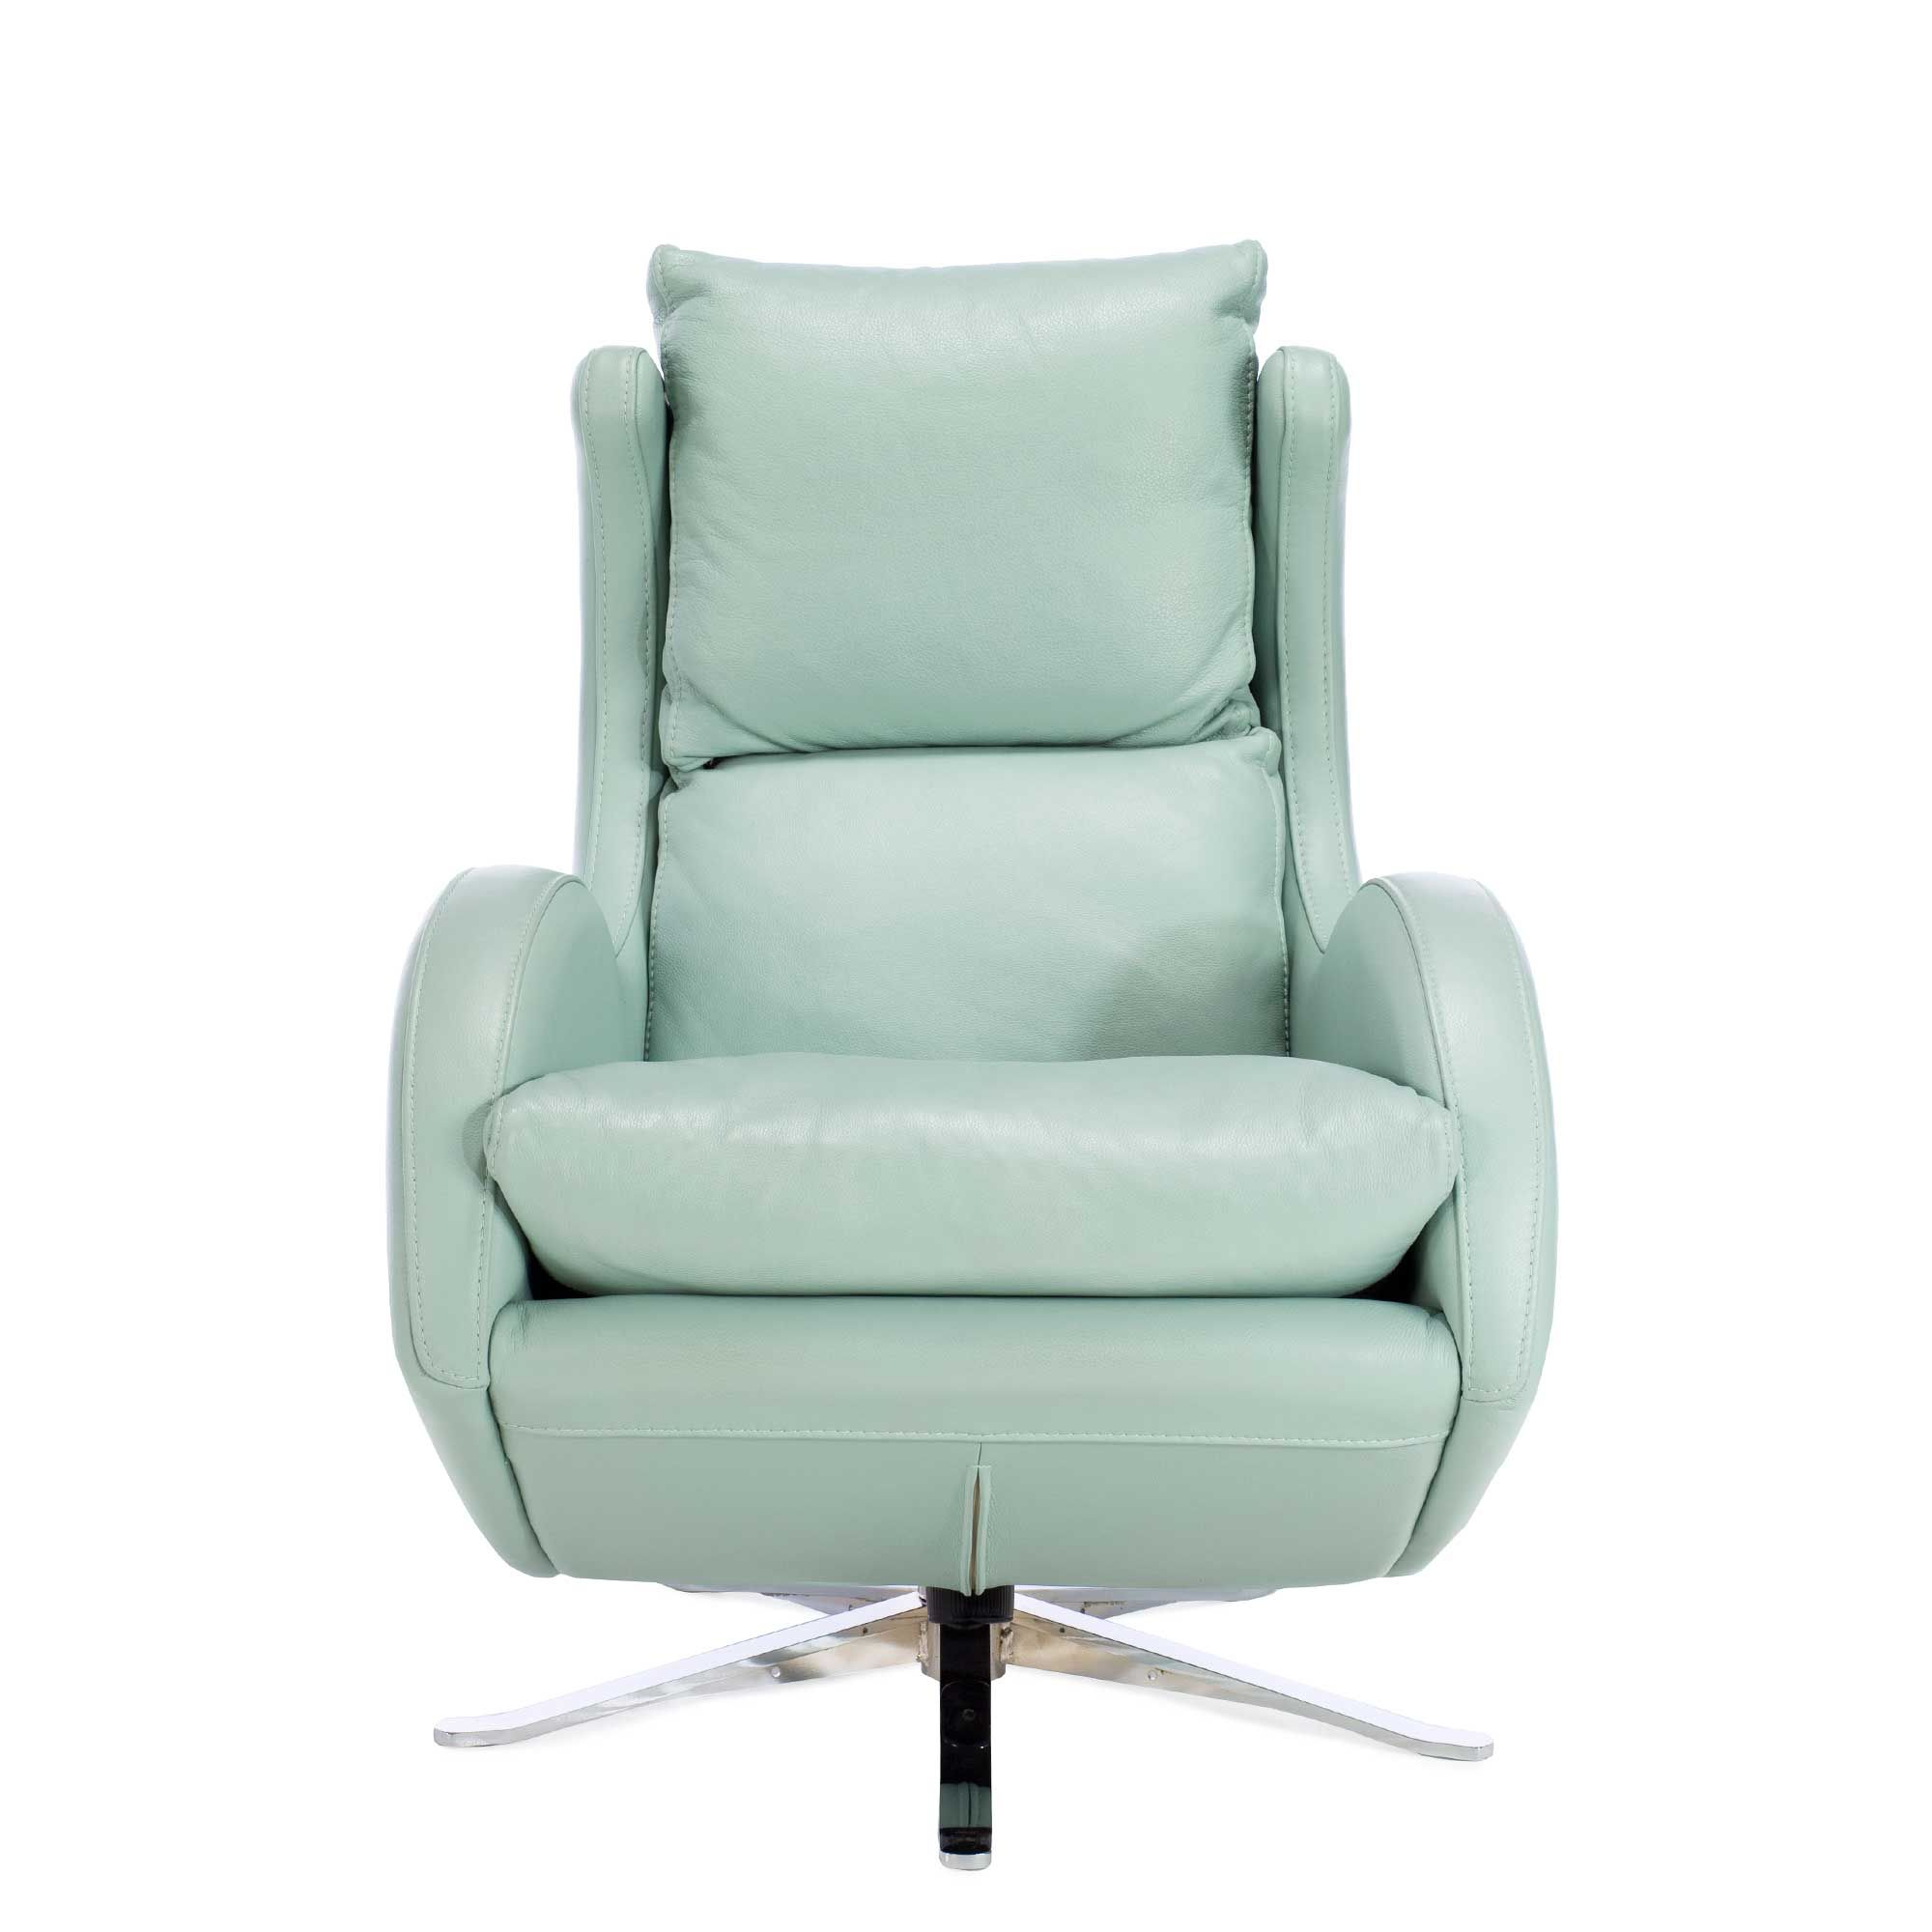 Fama lenny leather swivel reclining armchair pastel green recliners living room